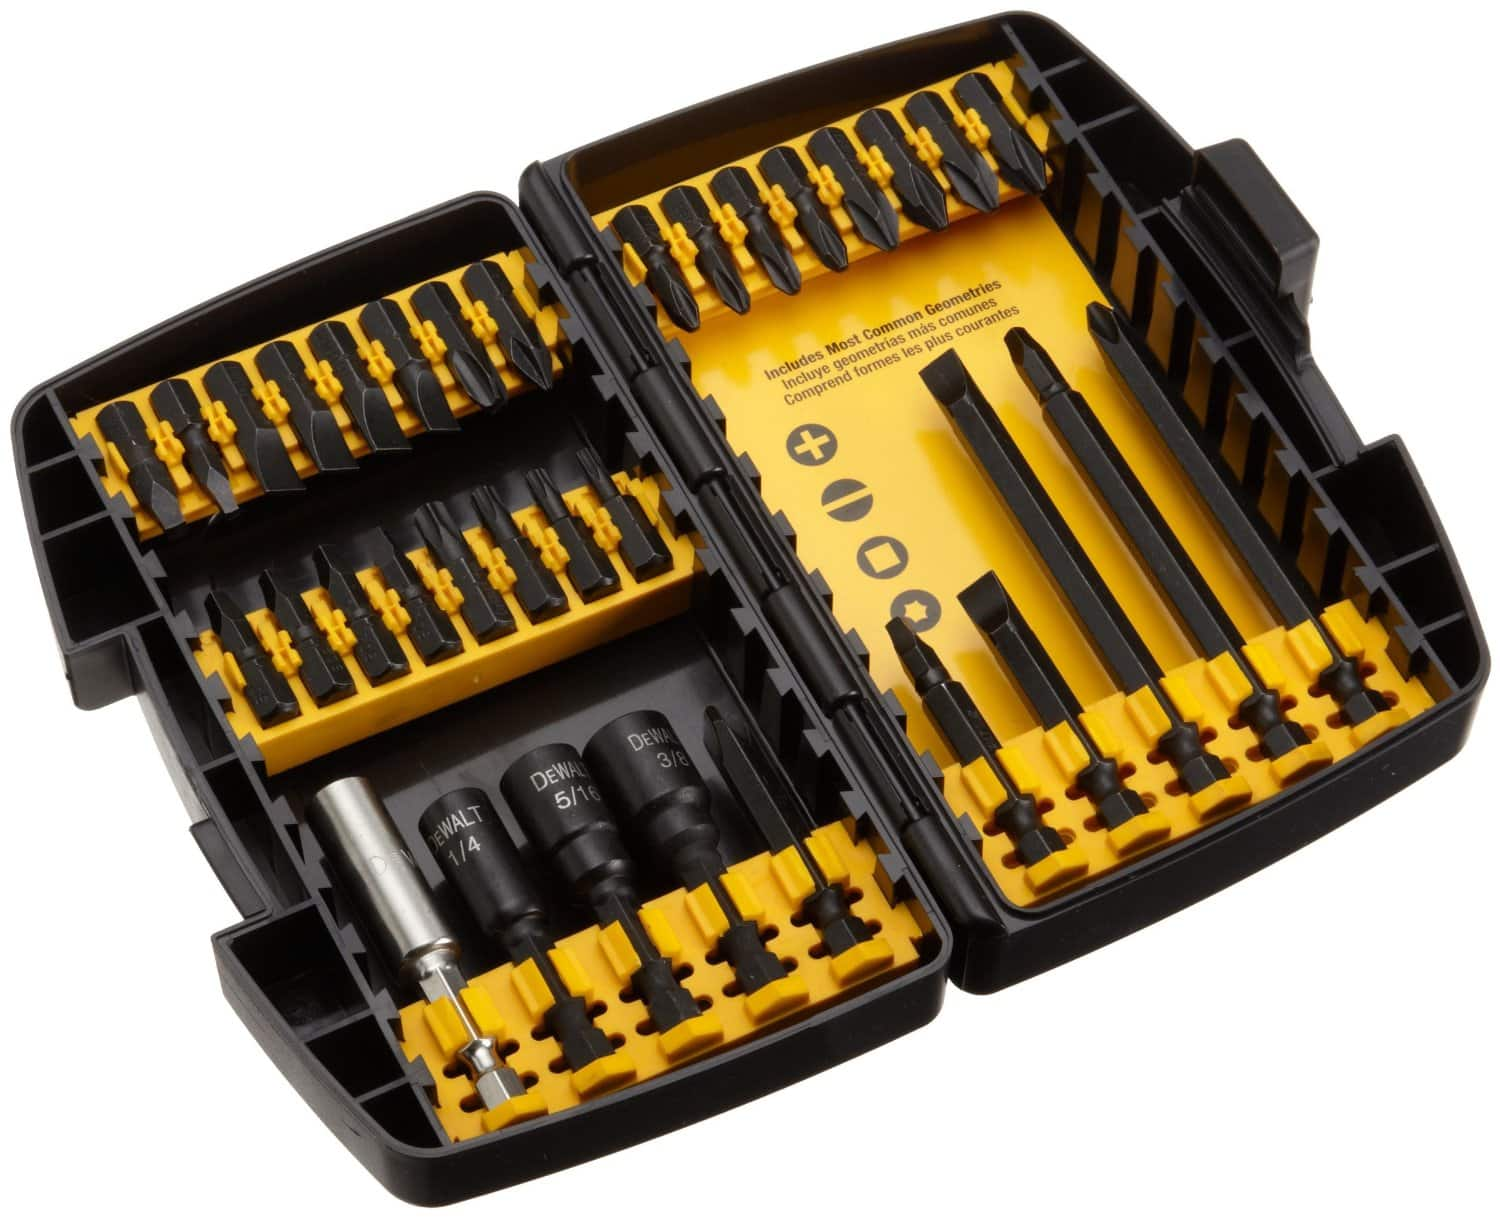 35-Piece Milwaukee Shockwave Impact Duty Steel Driver Bit Set $10